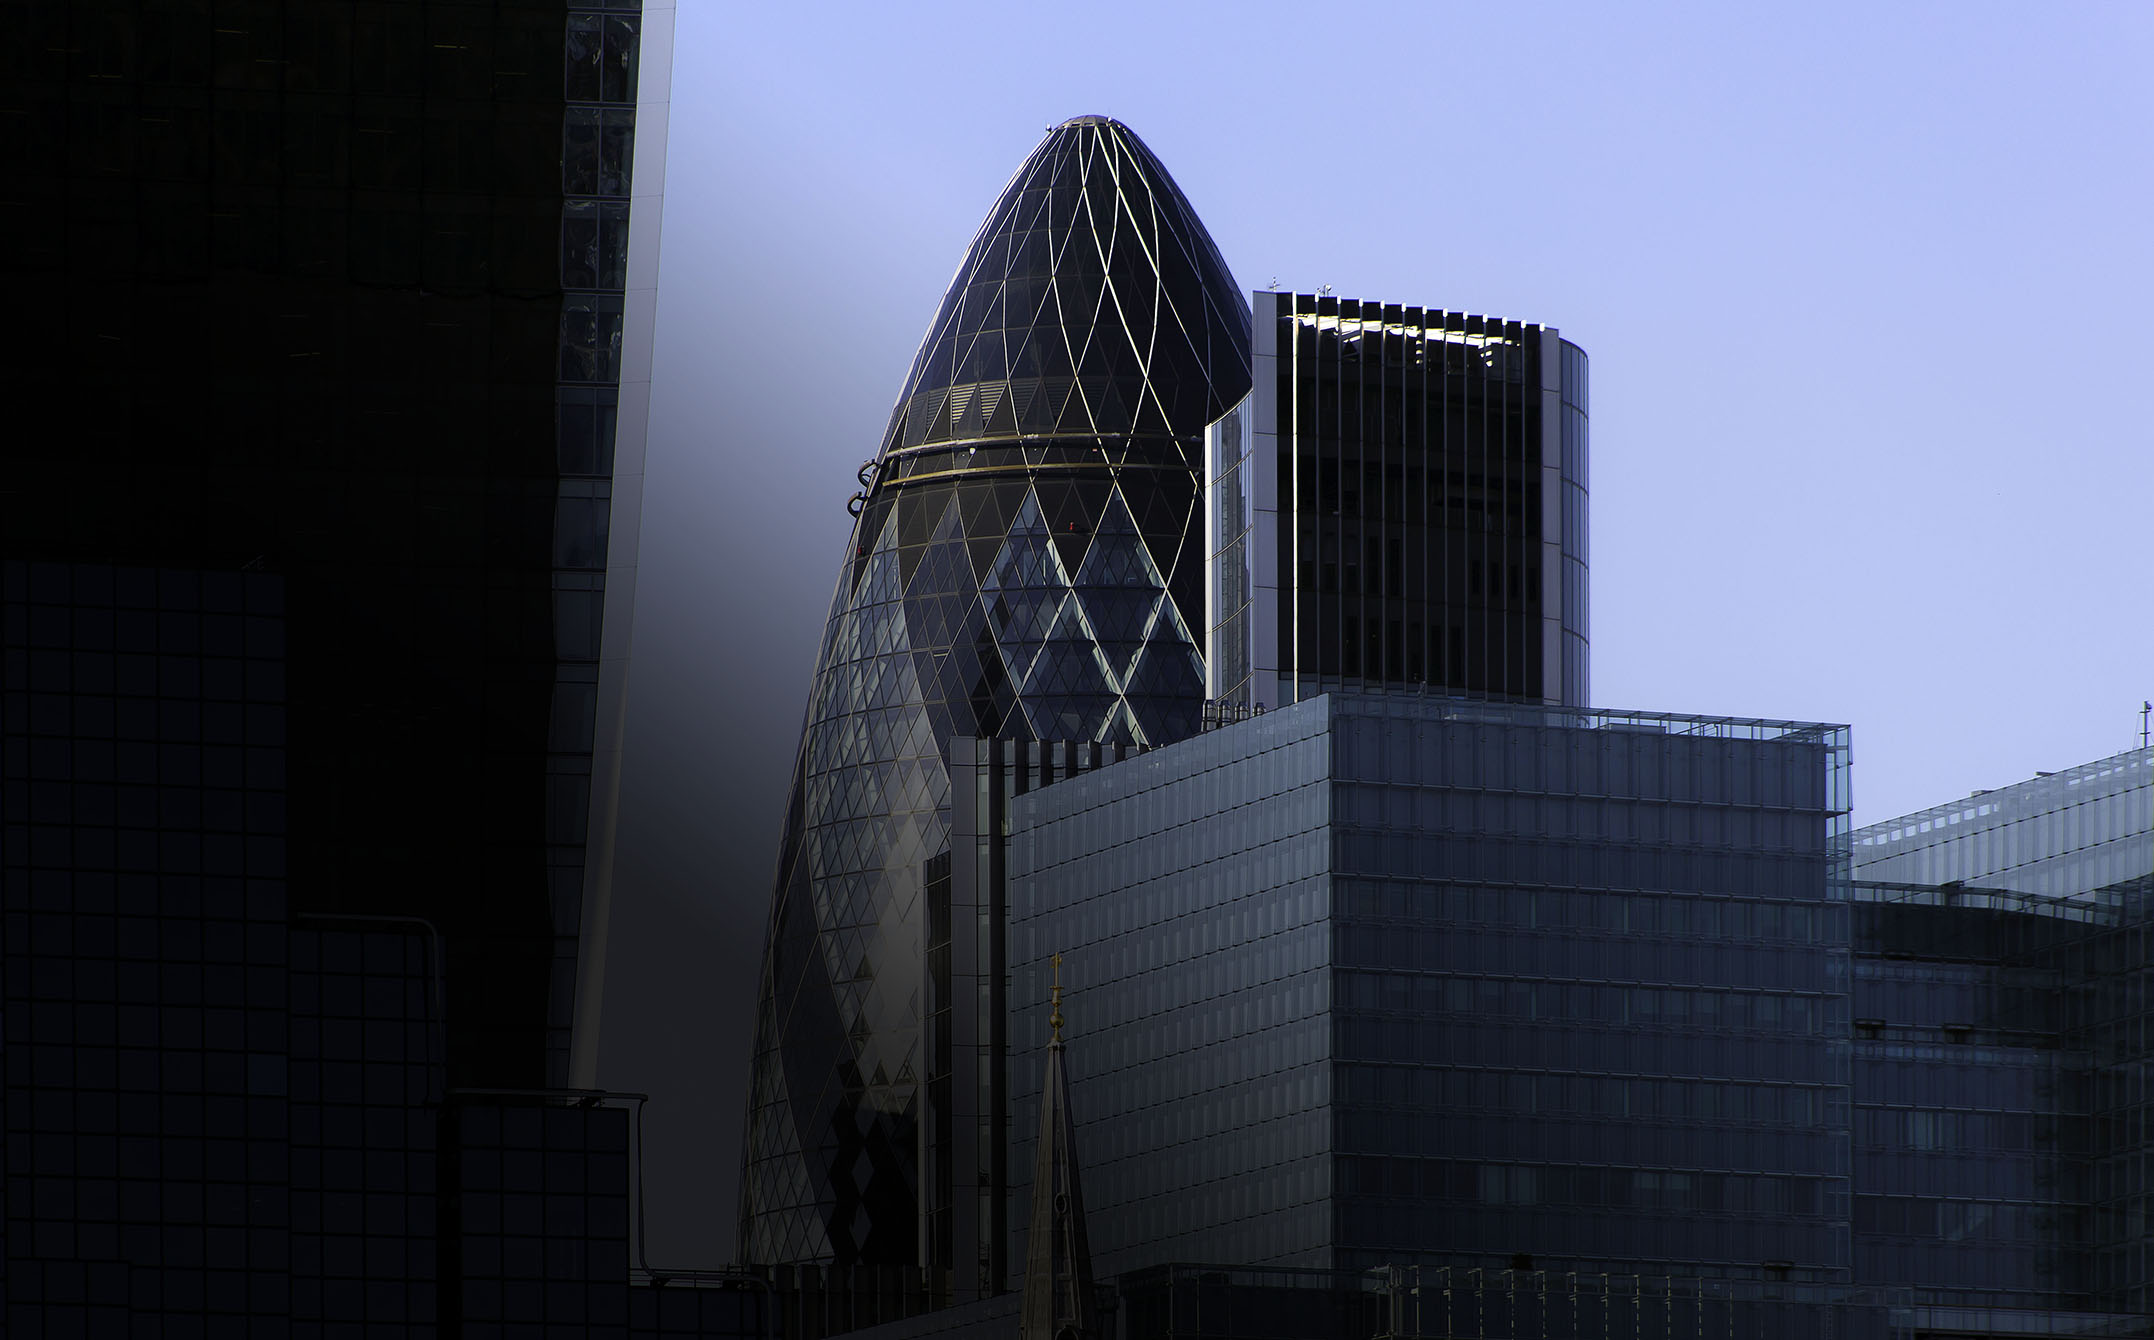 PHOTOGRAPHING THE GHERKIN